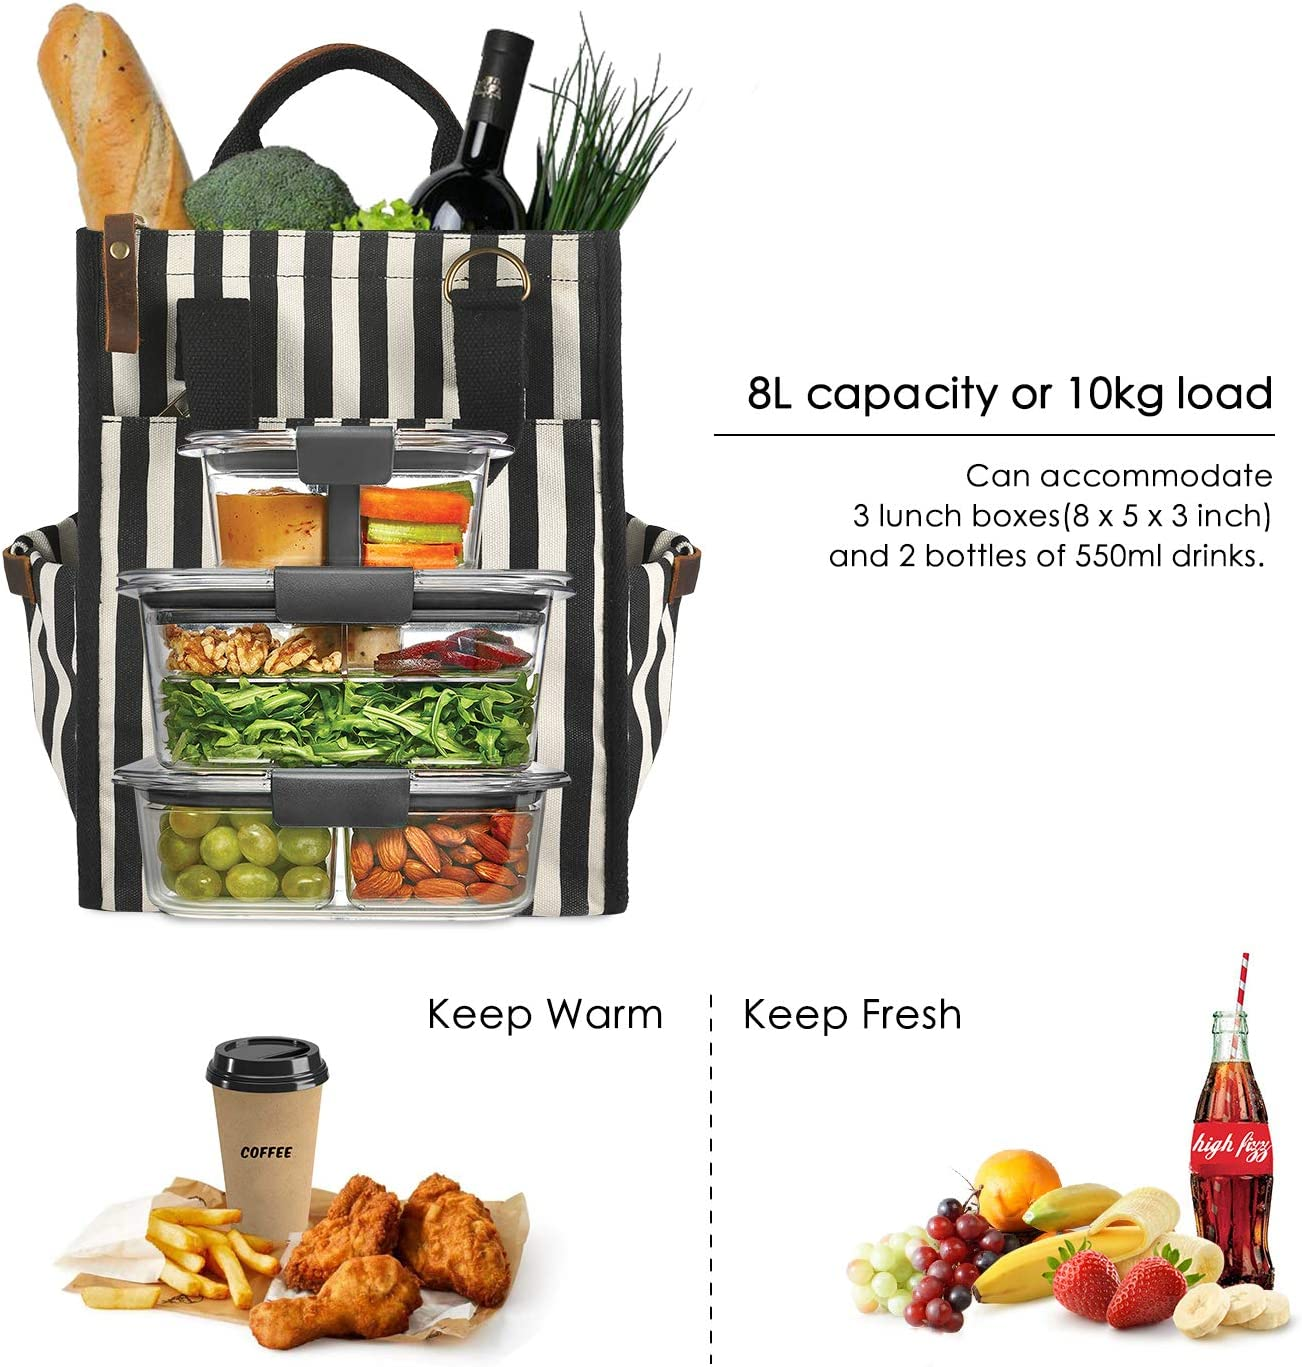 SMRITI Lunch Bag Canvas Lunch Container for Men Women Adults Insulated Stasher Bag Leakproof Cooler for Work Office School Picnic Zipper Closure Crazy Horse Leather Handle Adjustable Strap Stripes